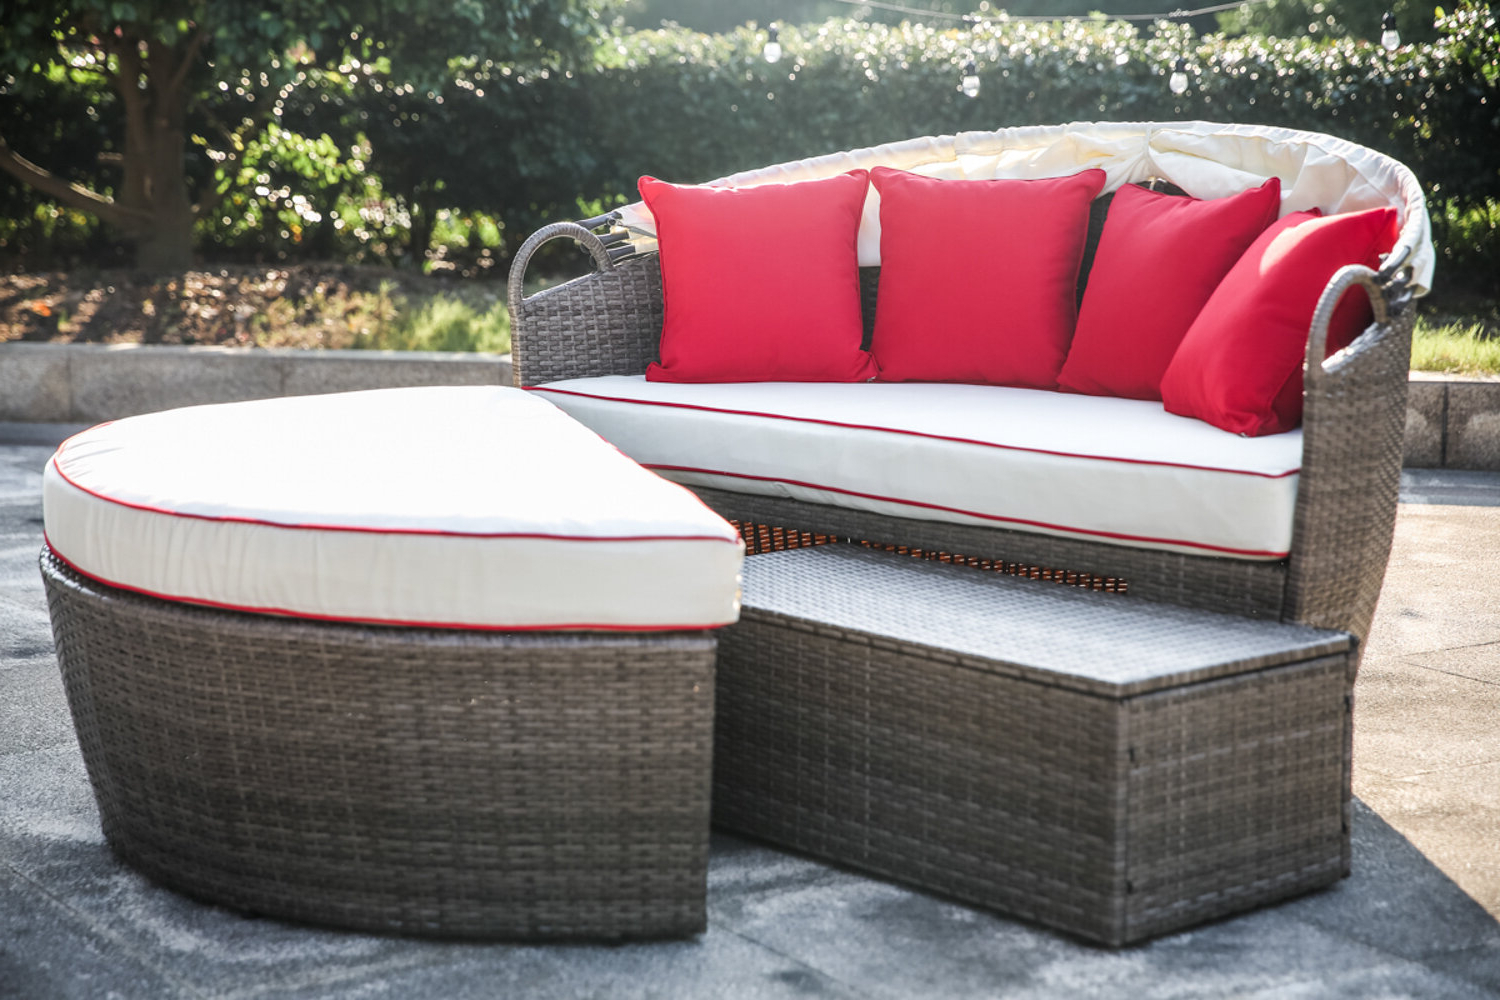 Favorite Aubrie Patio Daybeds With Cushions With Regard To Fansler Patio Daybed With Cushions (View 4 of 25)